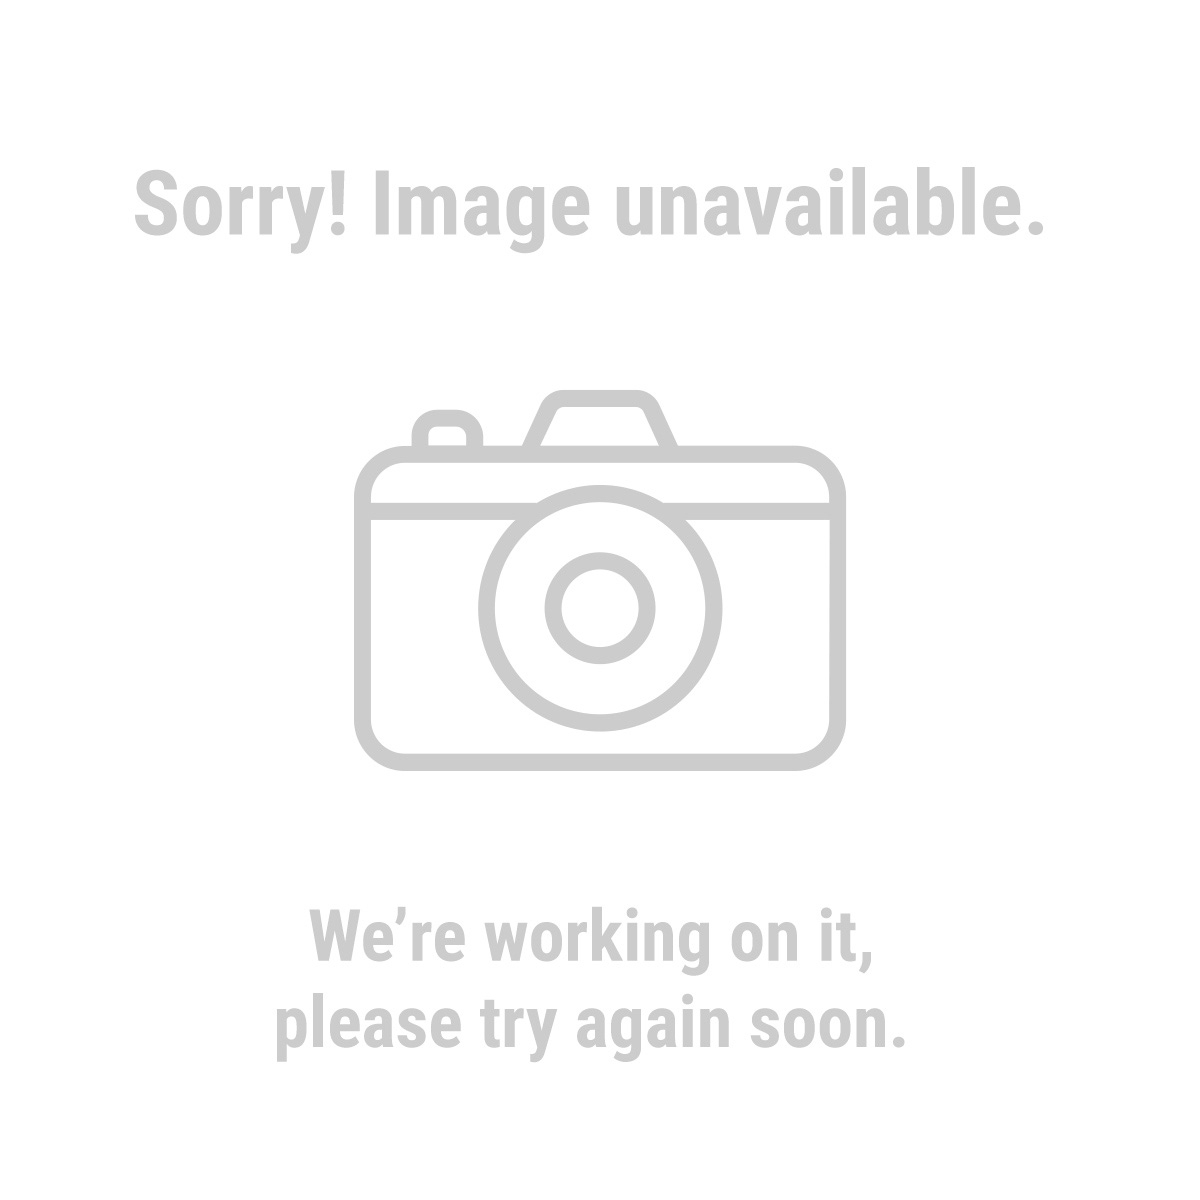 Chicago Electric Welding 60768 70 Amp Arc Welder